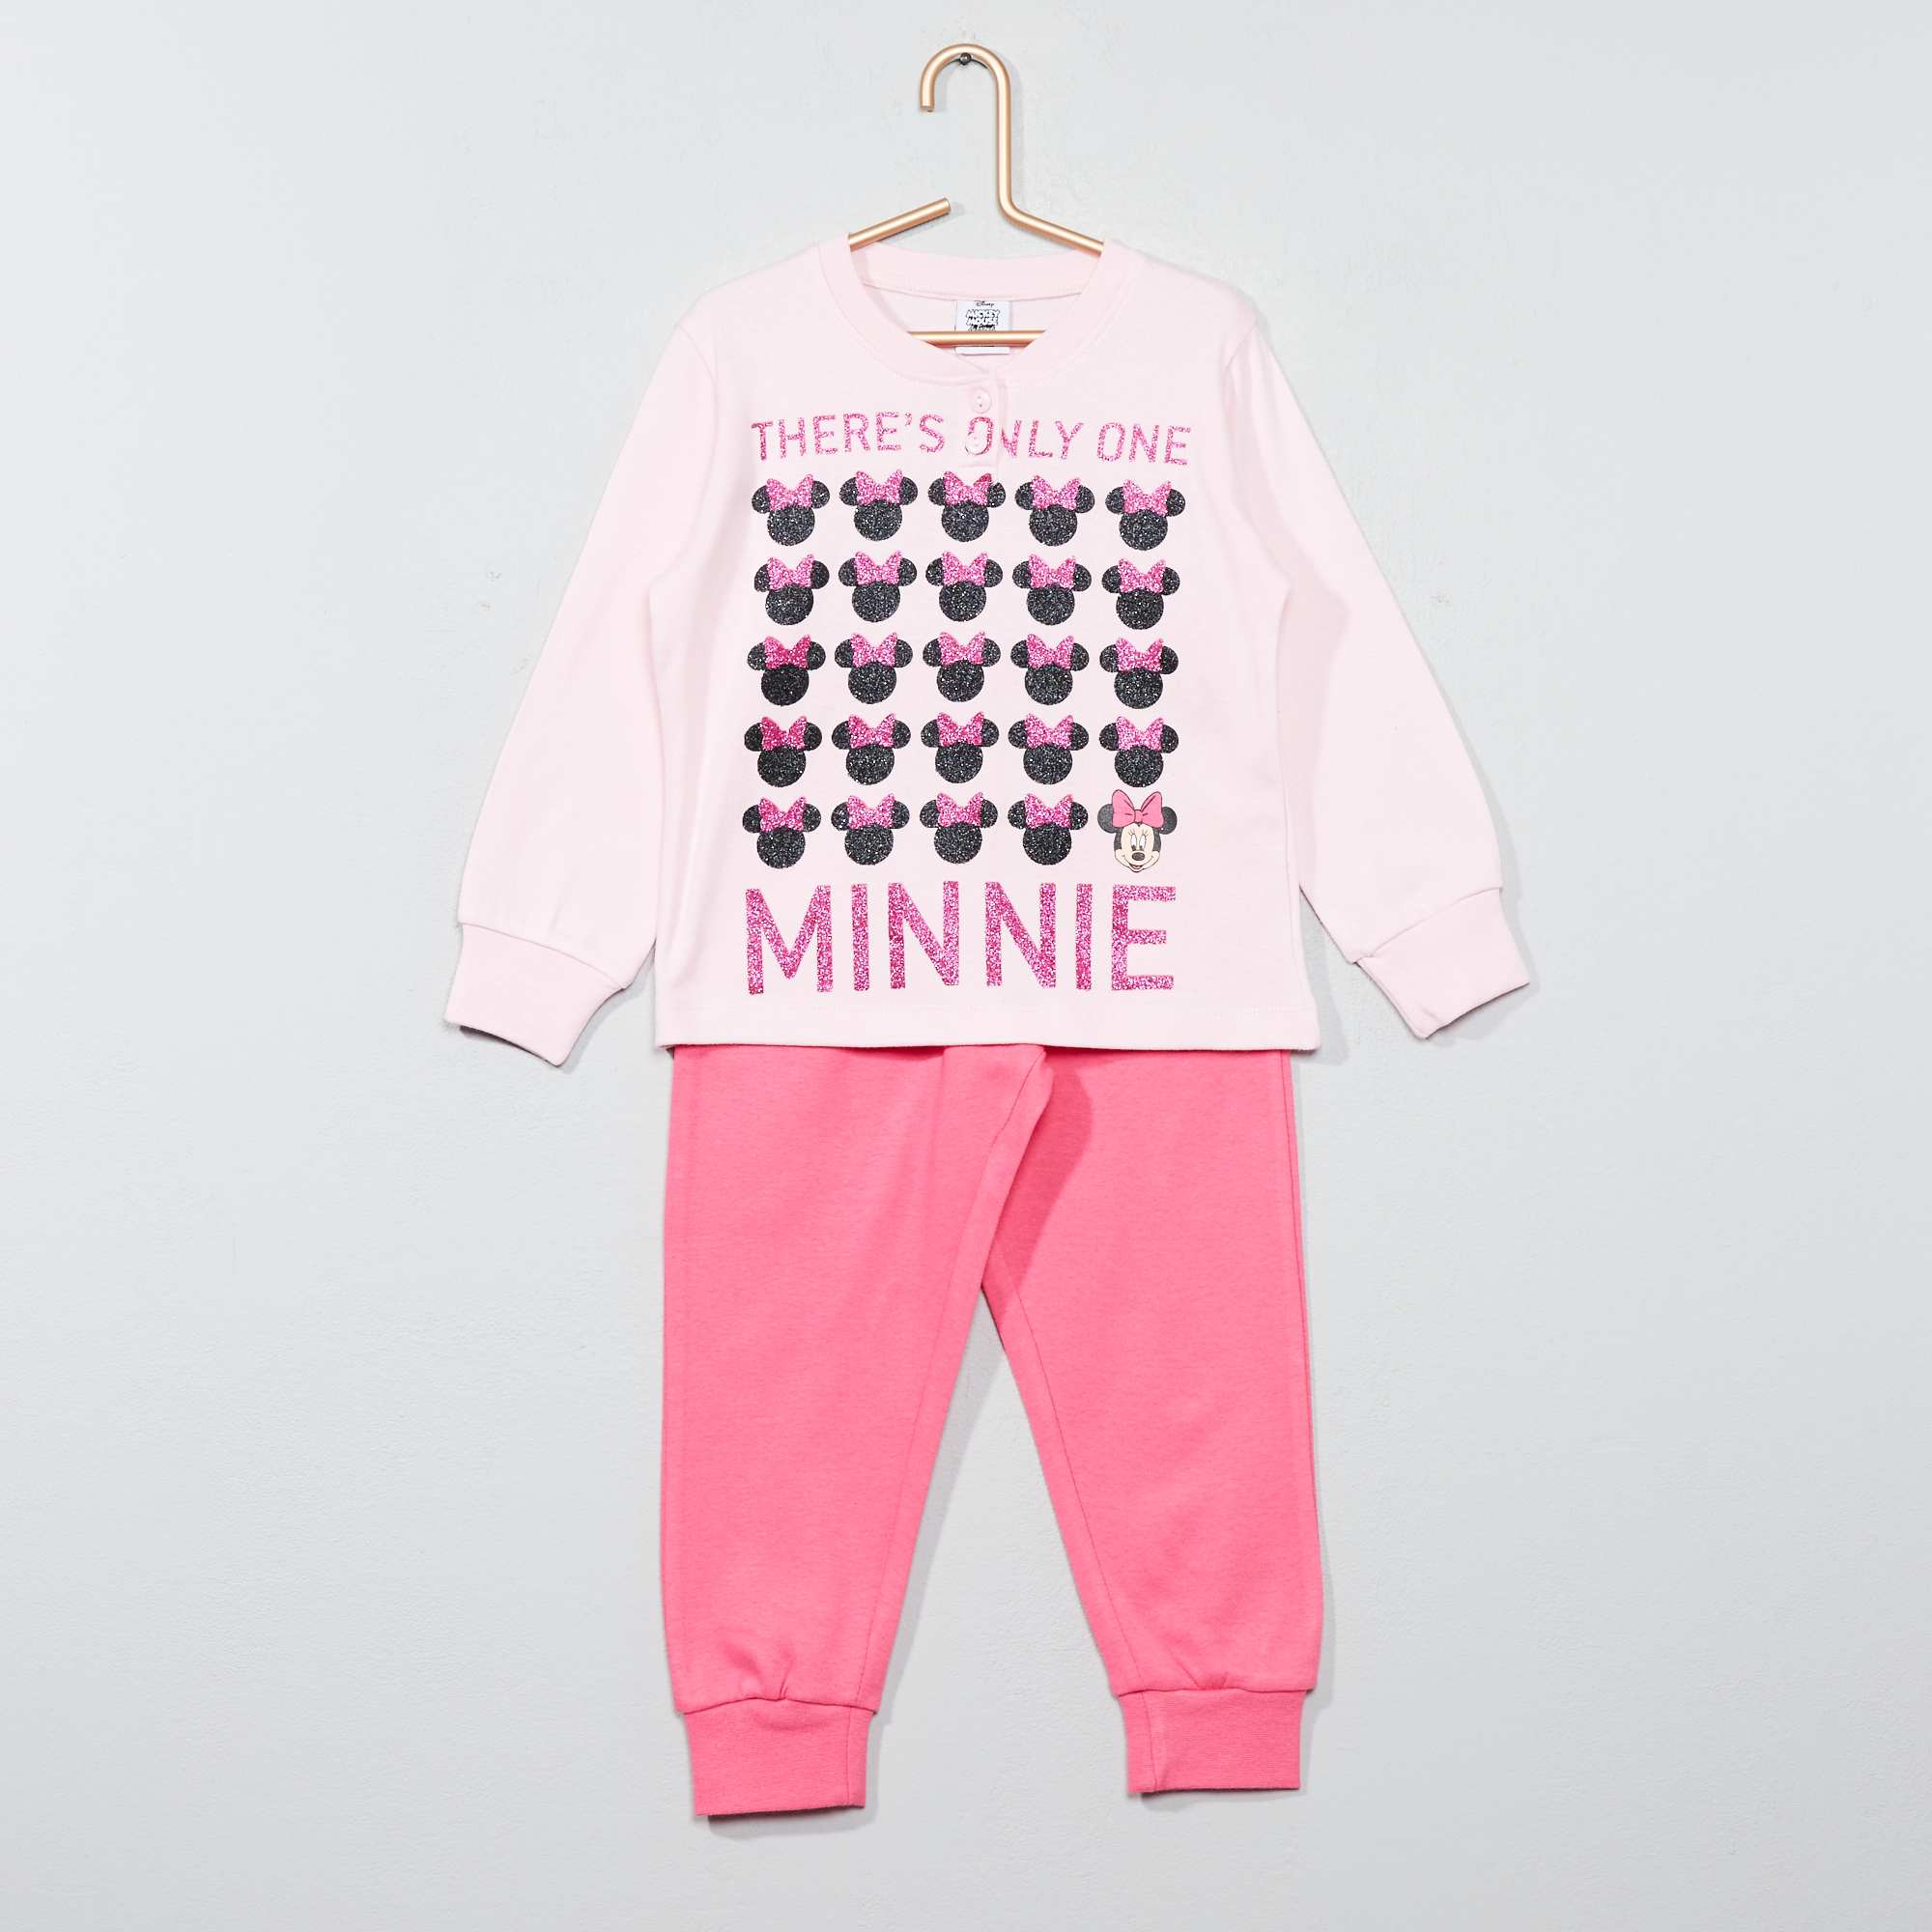 Couleur : rose, , ,, - Taille : 7A, 5A, 8A,6A,Brillant ce pyjama ! - Pyjama long 'Minnie Mouse' pur coton - Tee-shirt manches